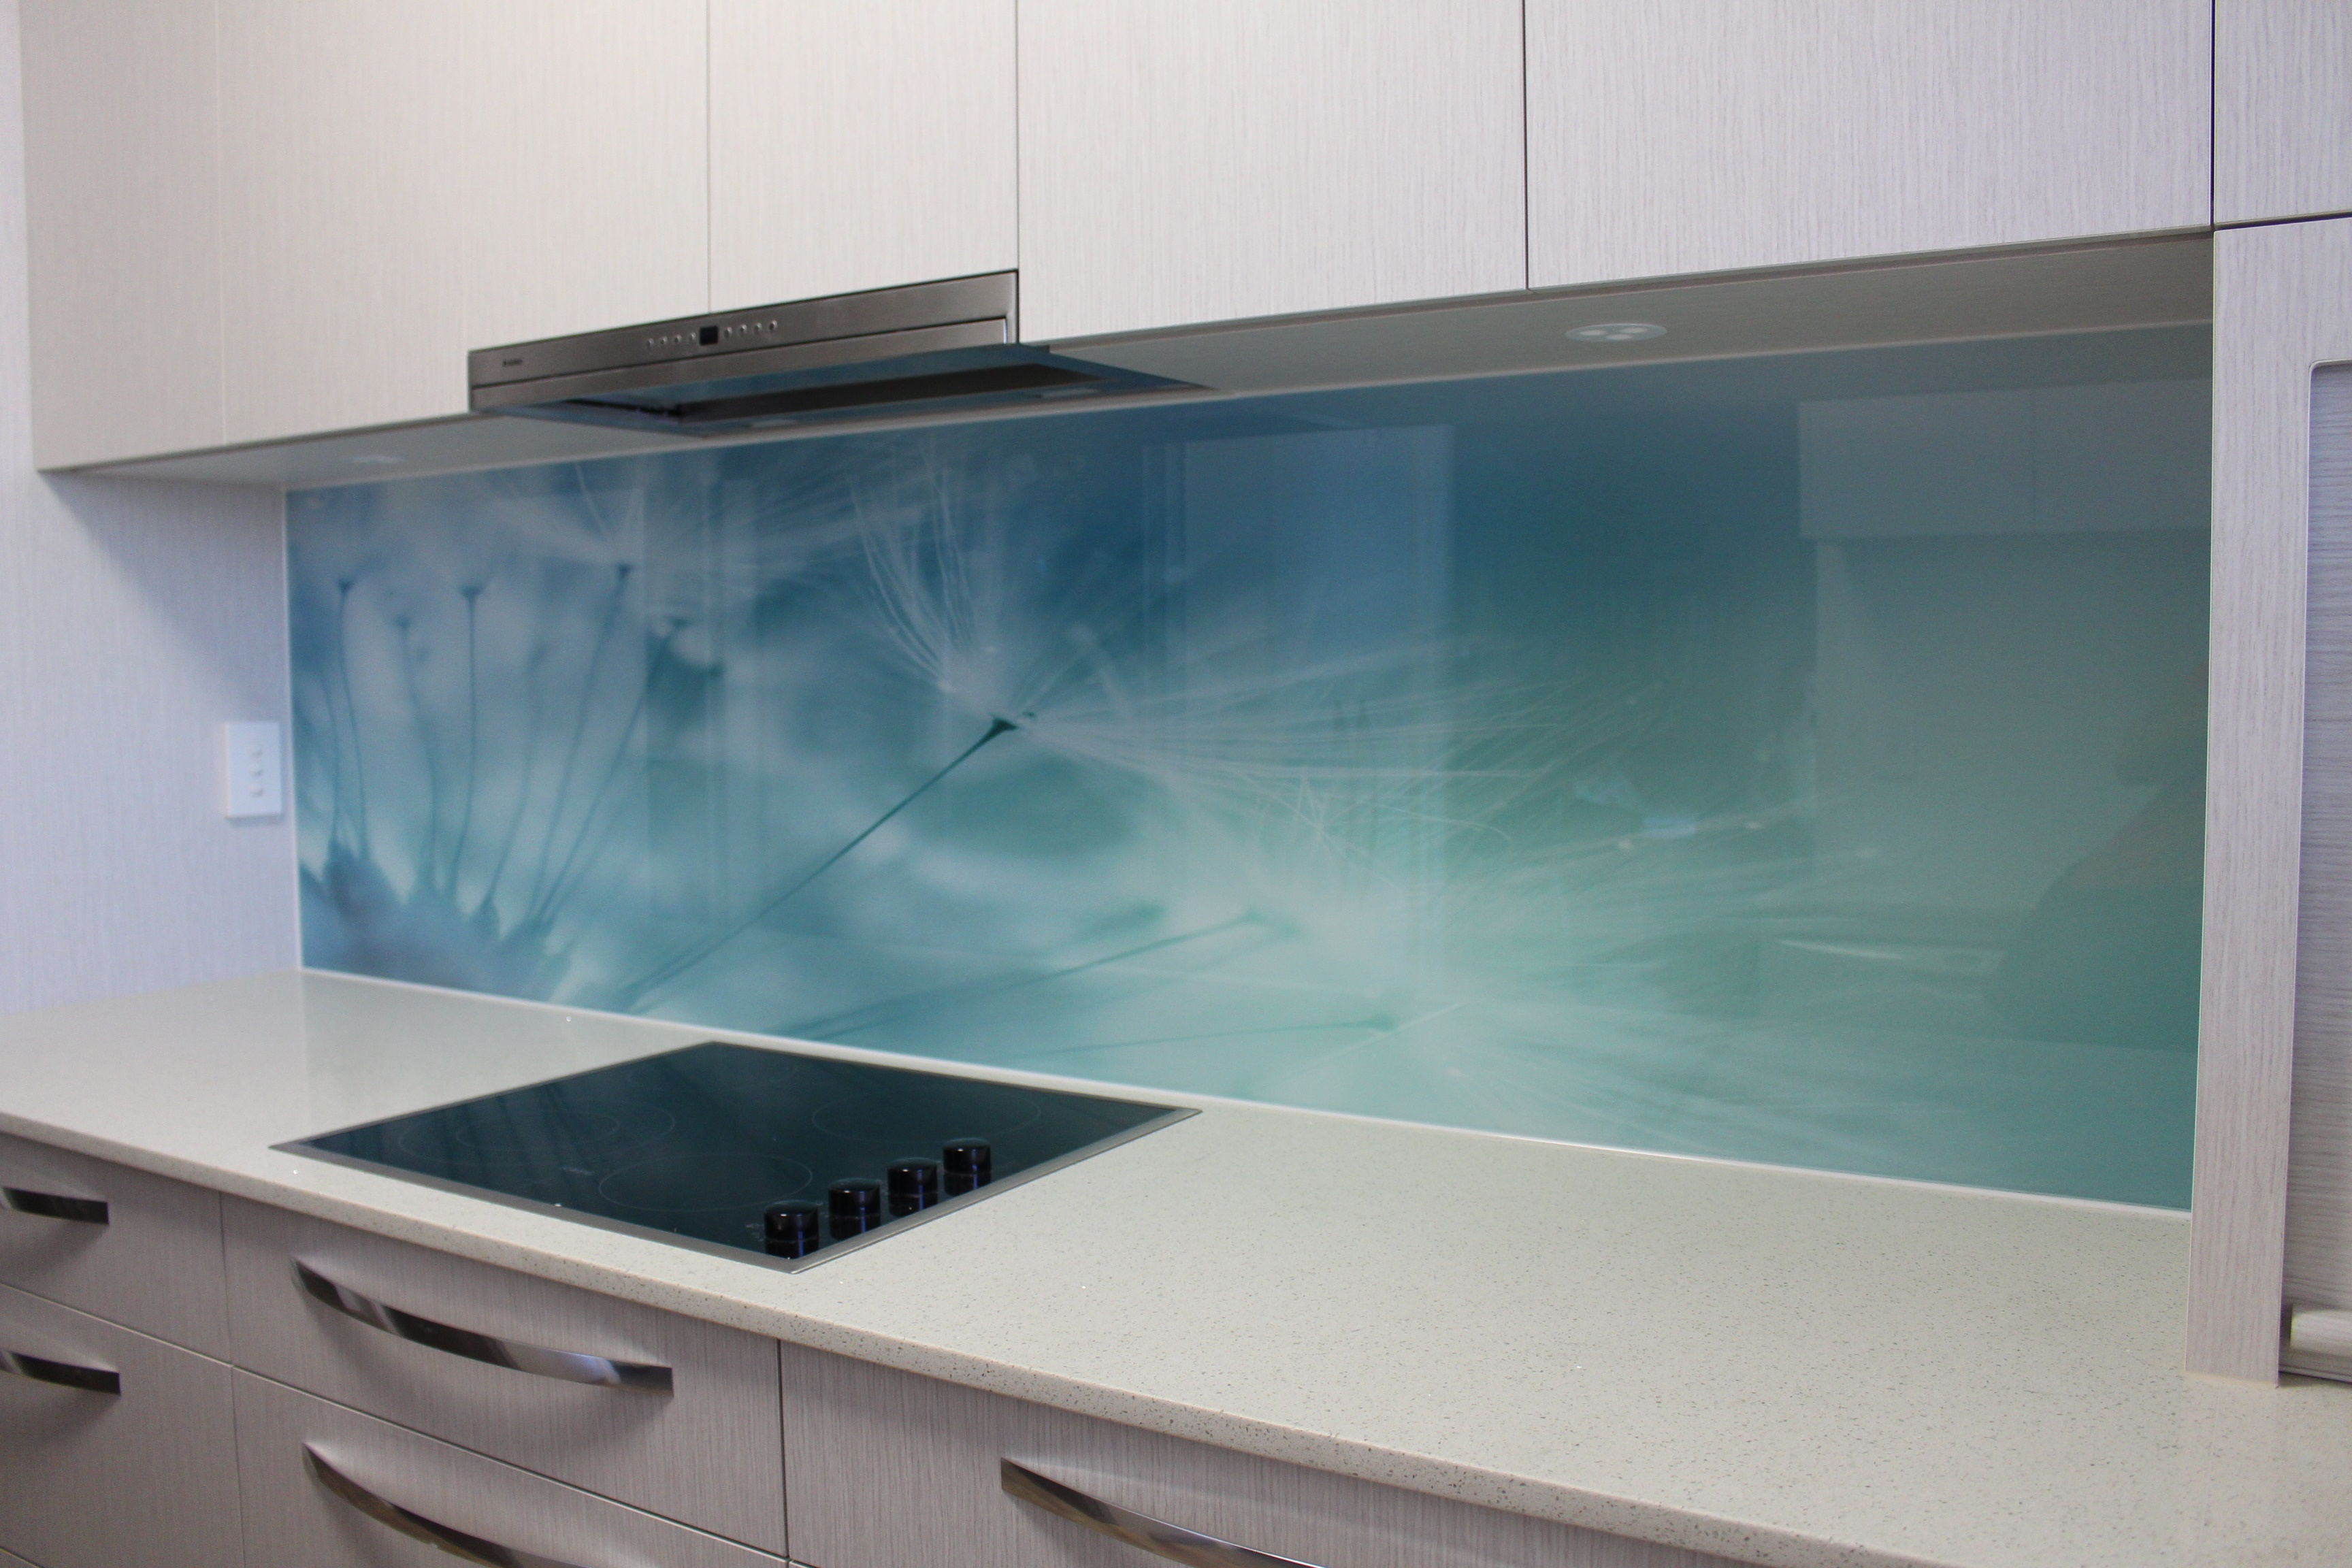 Custom Printed Glass Kitchen Splashbacks For Your Kitchen Or Bathroom Walls Graphic Glass Services